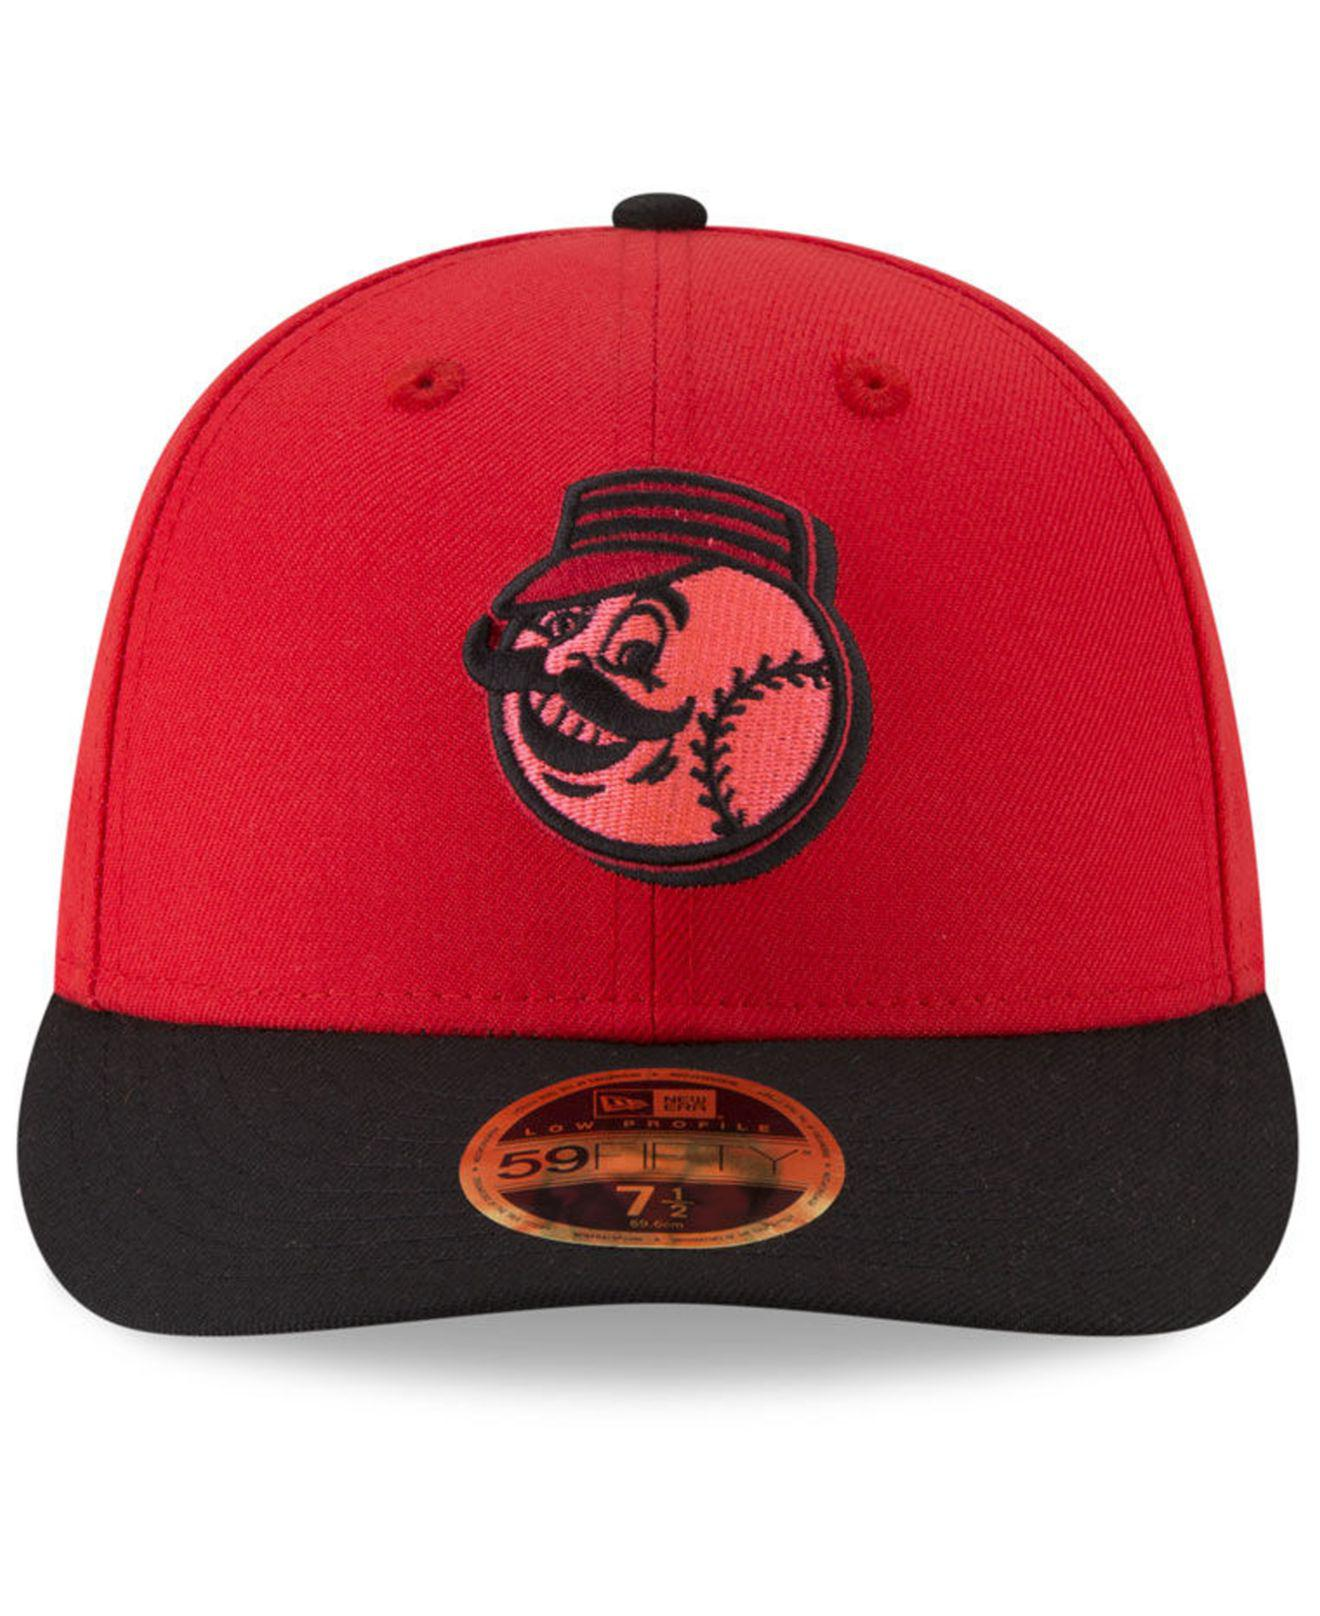 410154ed1603a5 reduced new era cincinnati reds stretch fit hat 2aef9 e9dbb; germany lyst  ktz cincinnati reds players weekend low profile 59fifty fitted cap in red  for men